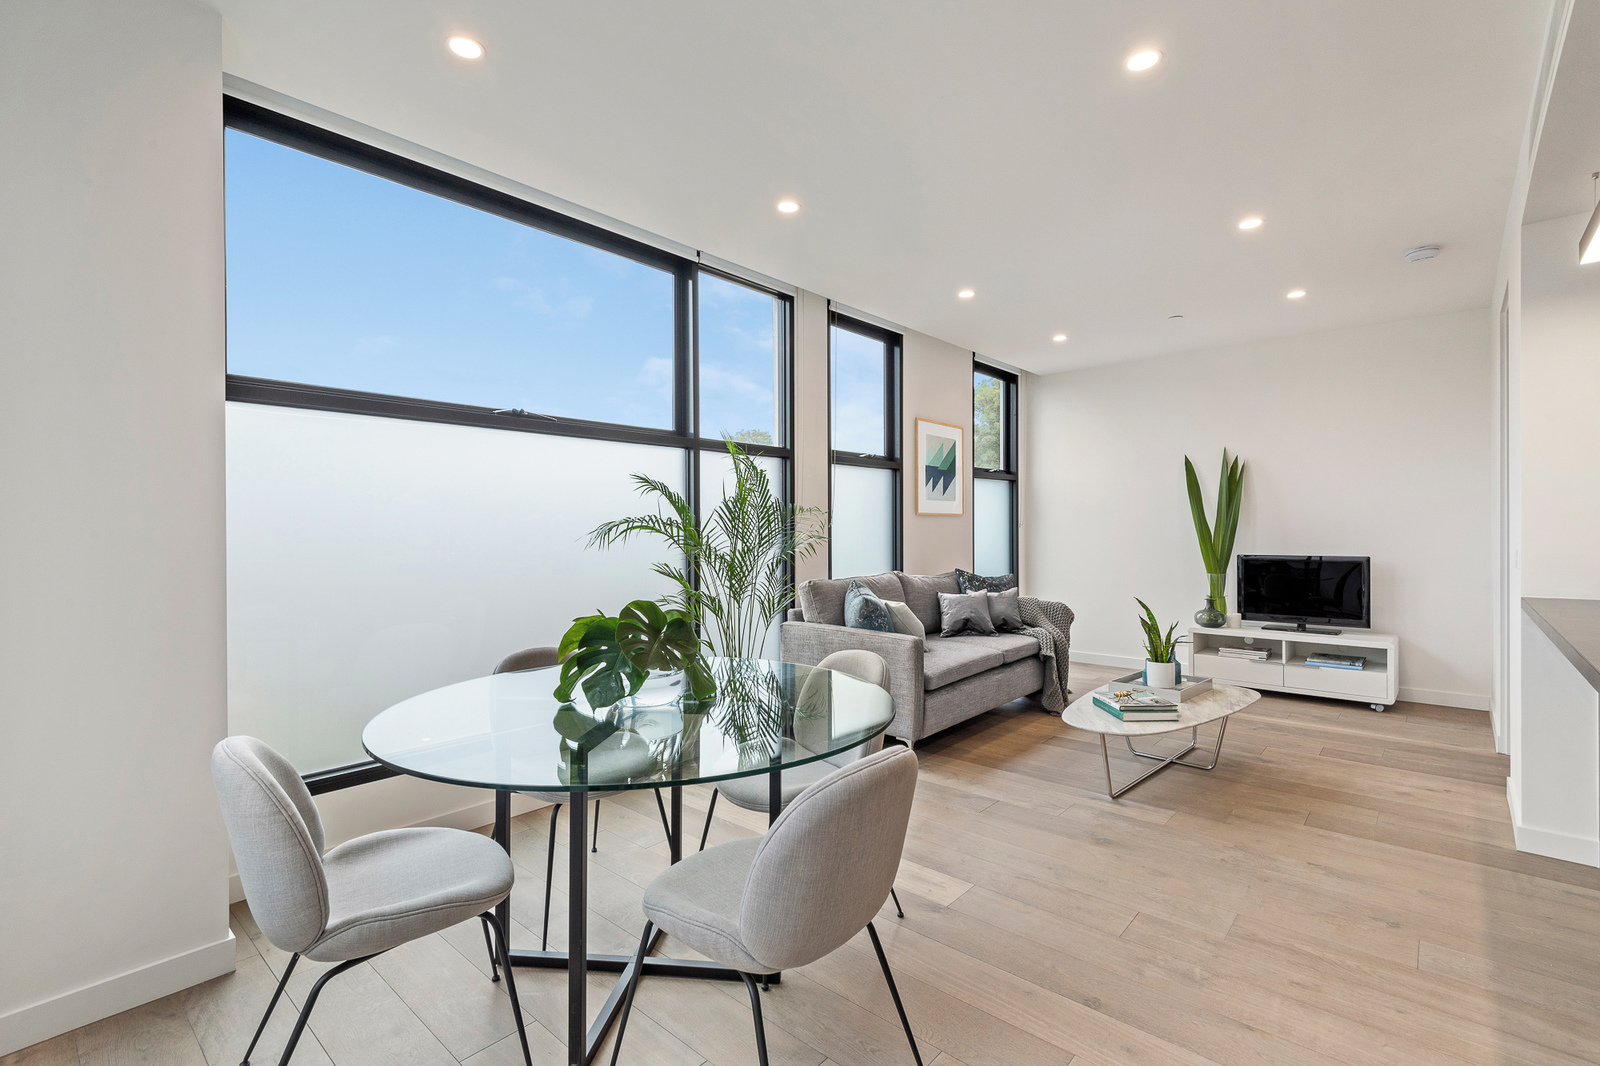 2.02/780 Riversdale Road, Camberwell 3124 - Image 3